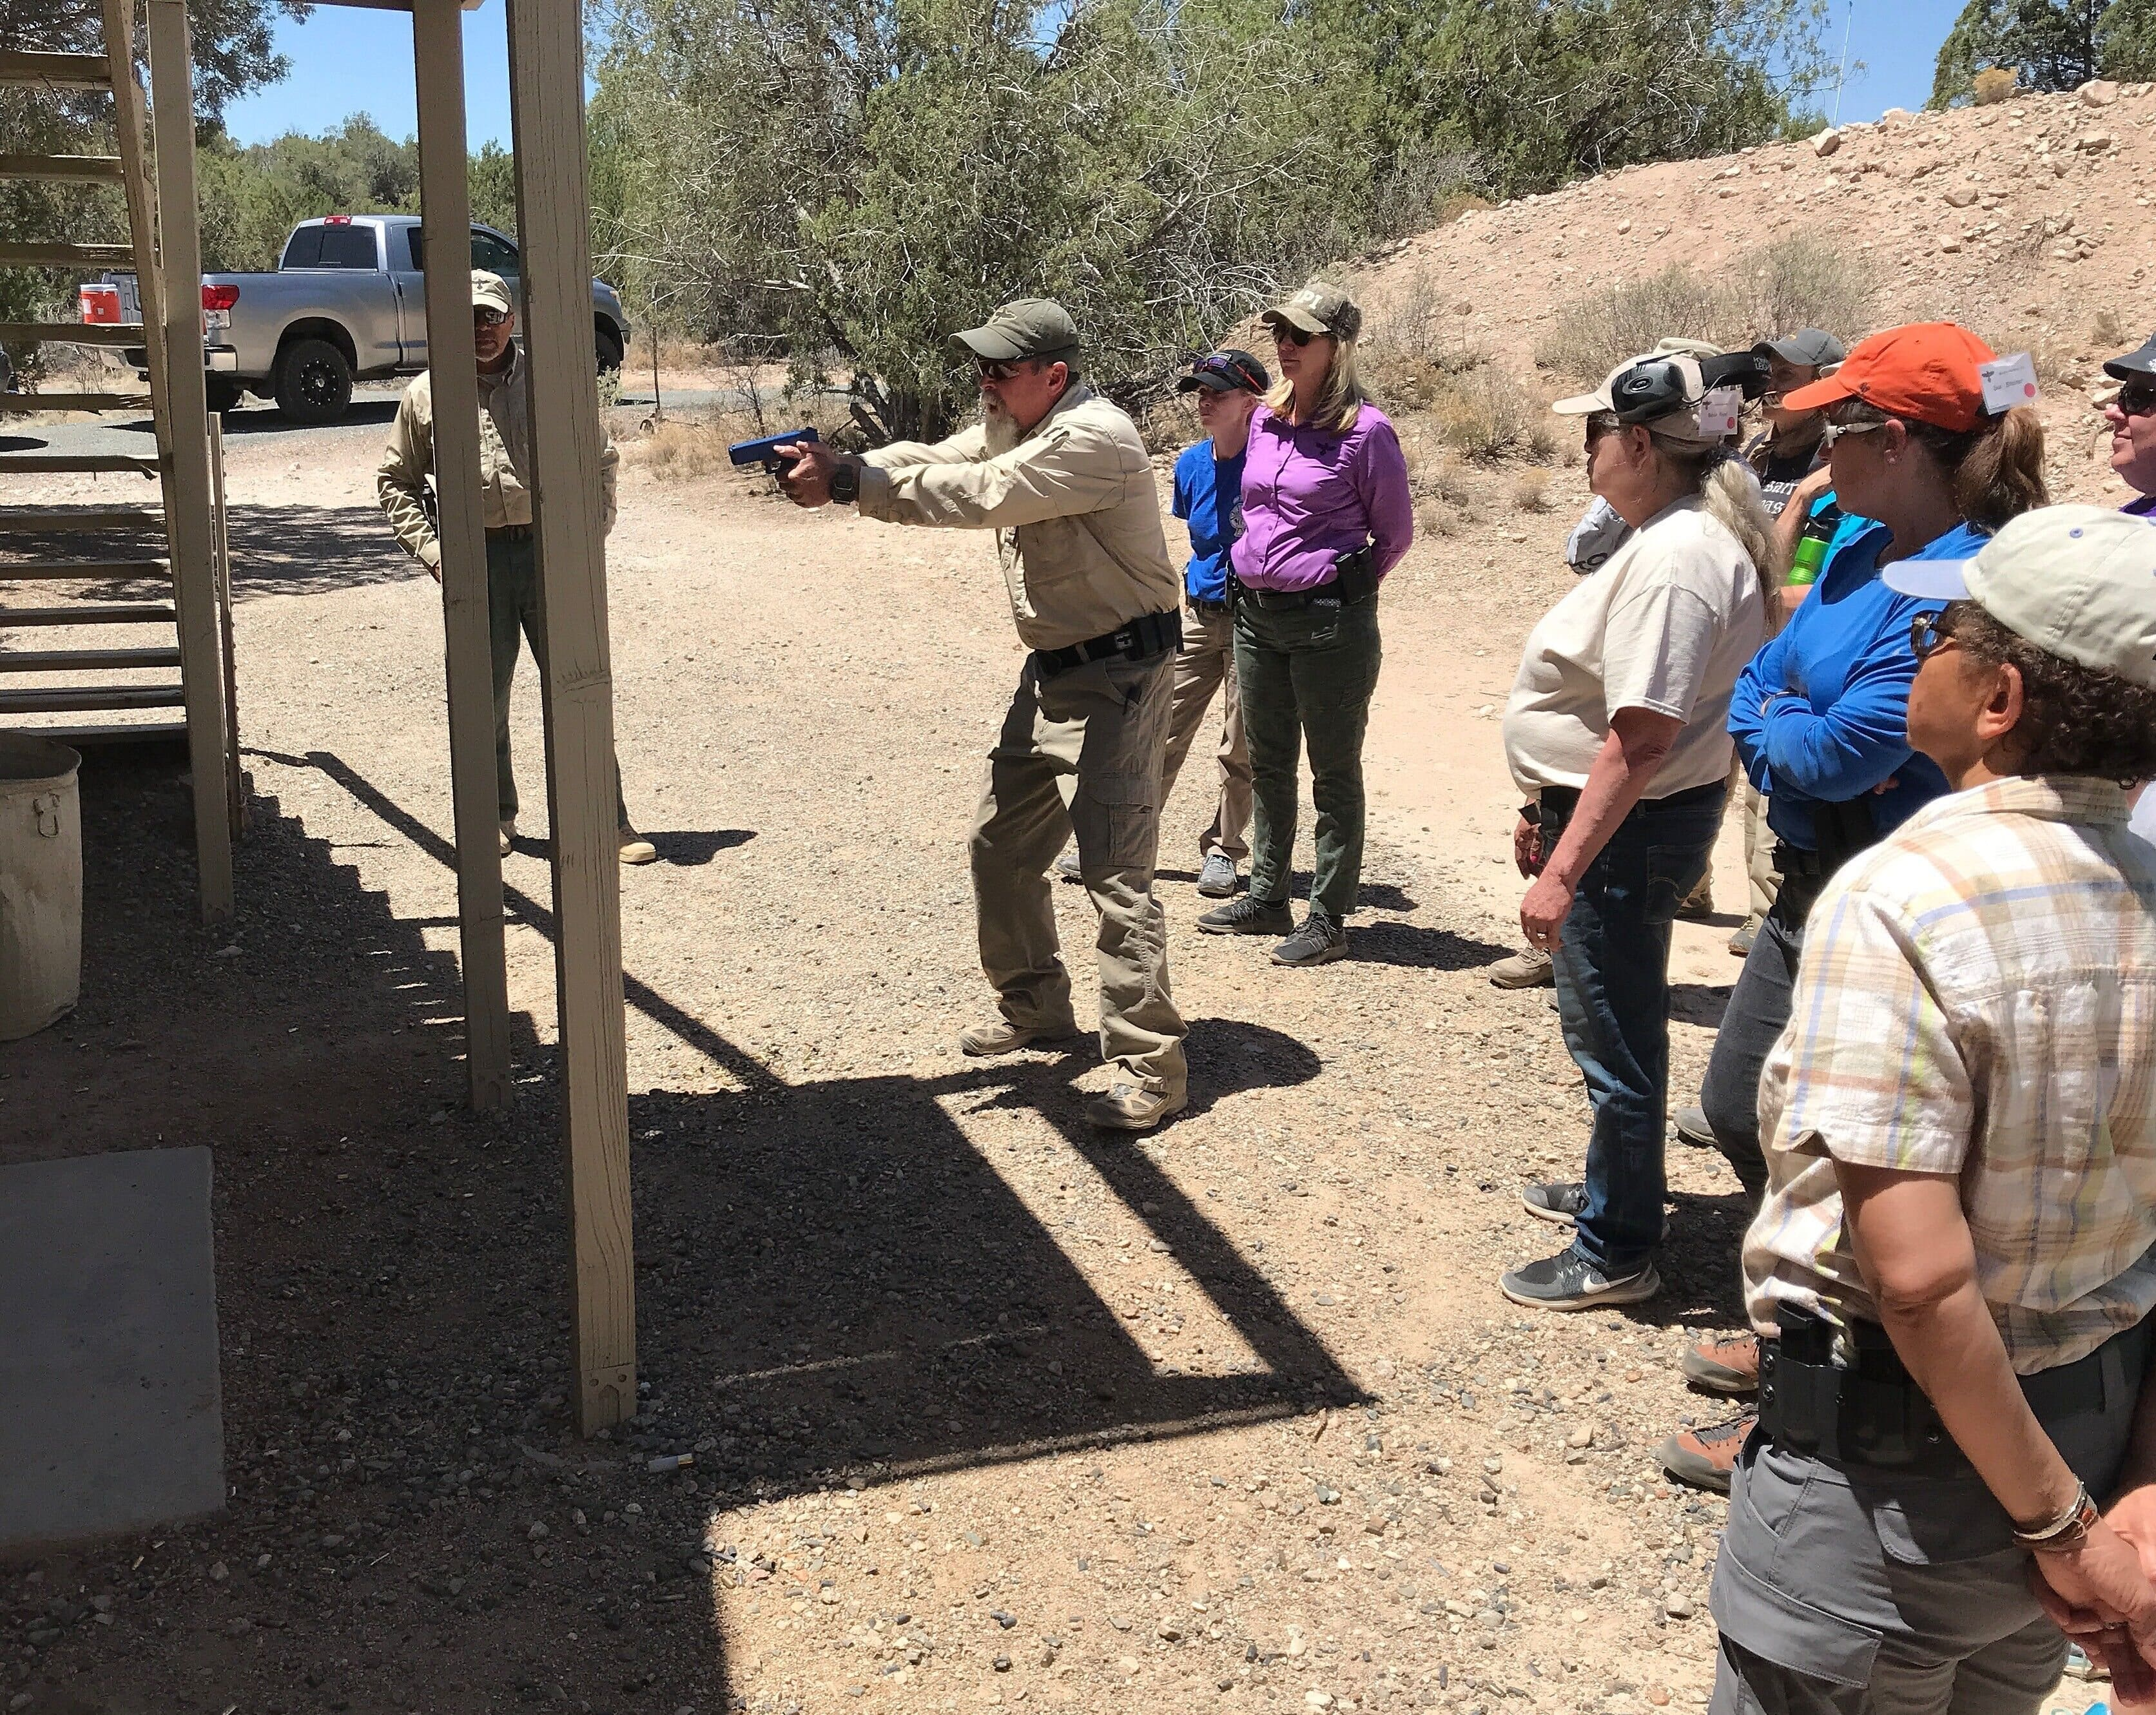 Gunsite Academy, firearms instructor, concealed carry, owb, range day, ladies pistol, gun training, firearms trainer, responsible, ccw, ccp, training course, weapons training, CrossBreed Holsters, instructors, teachers, shoot house, slice the pie, clearing rooms